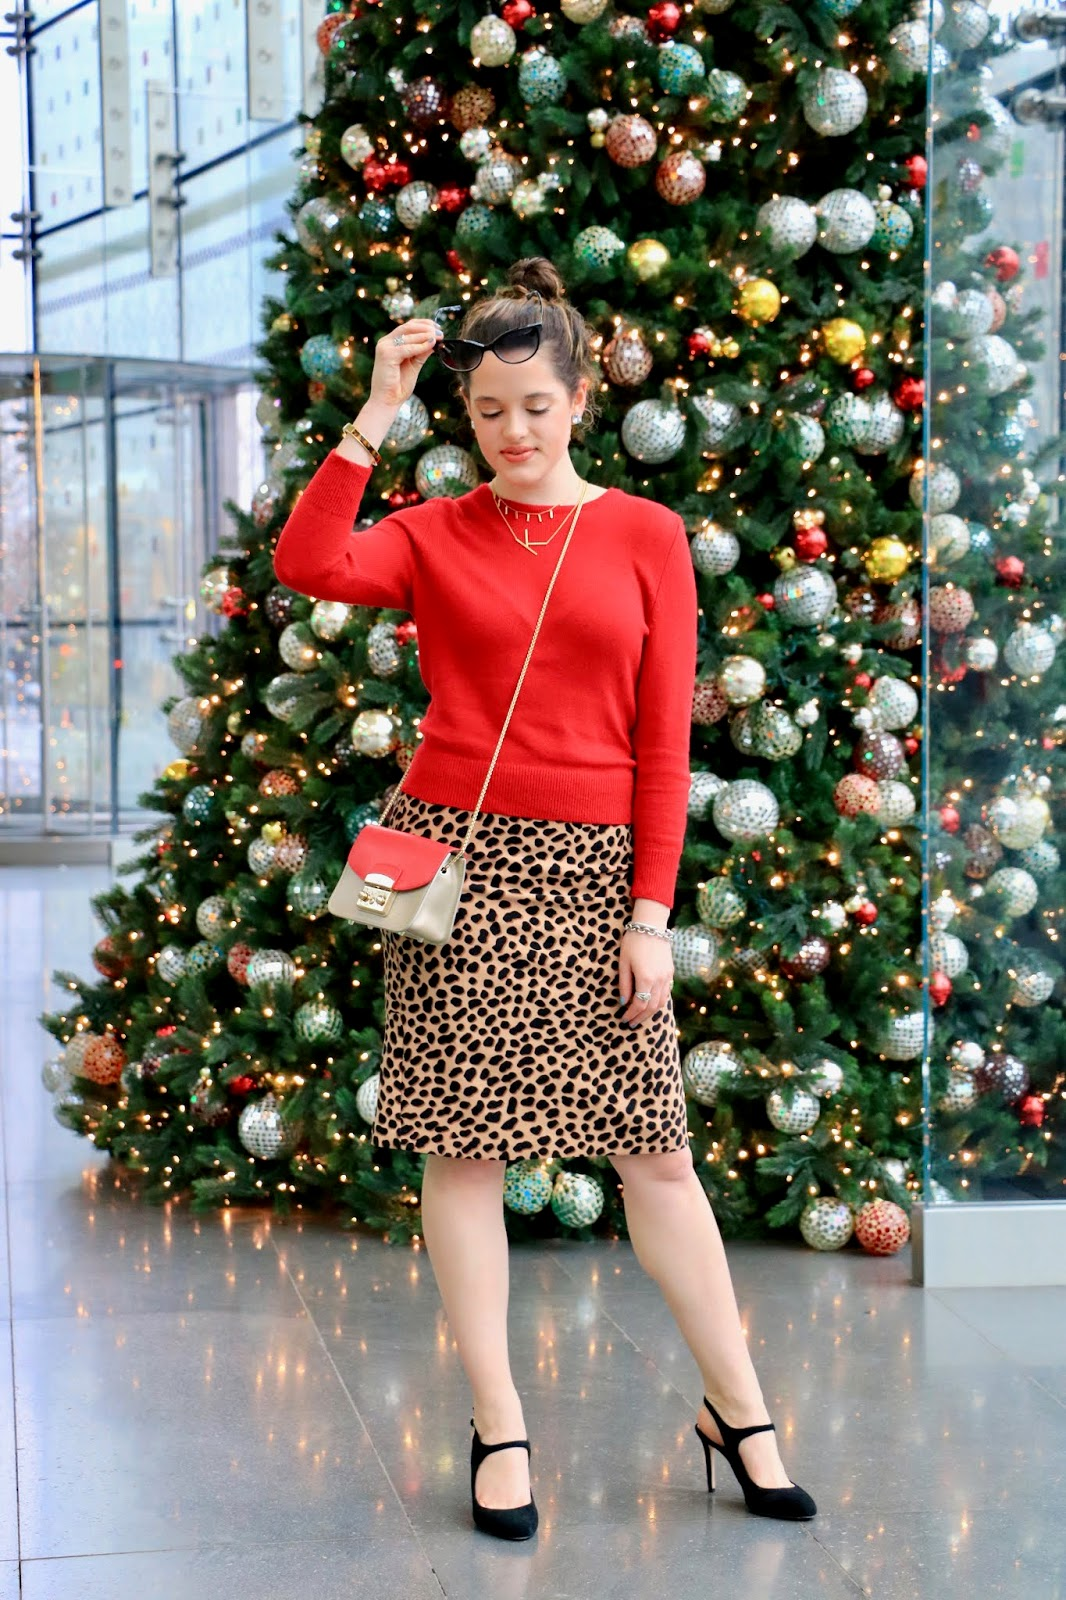 Nyc fashion blogger Kathleen Harper's holiday party outfit ideas